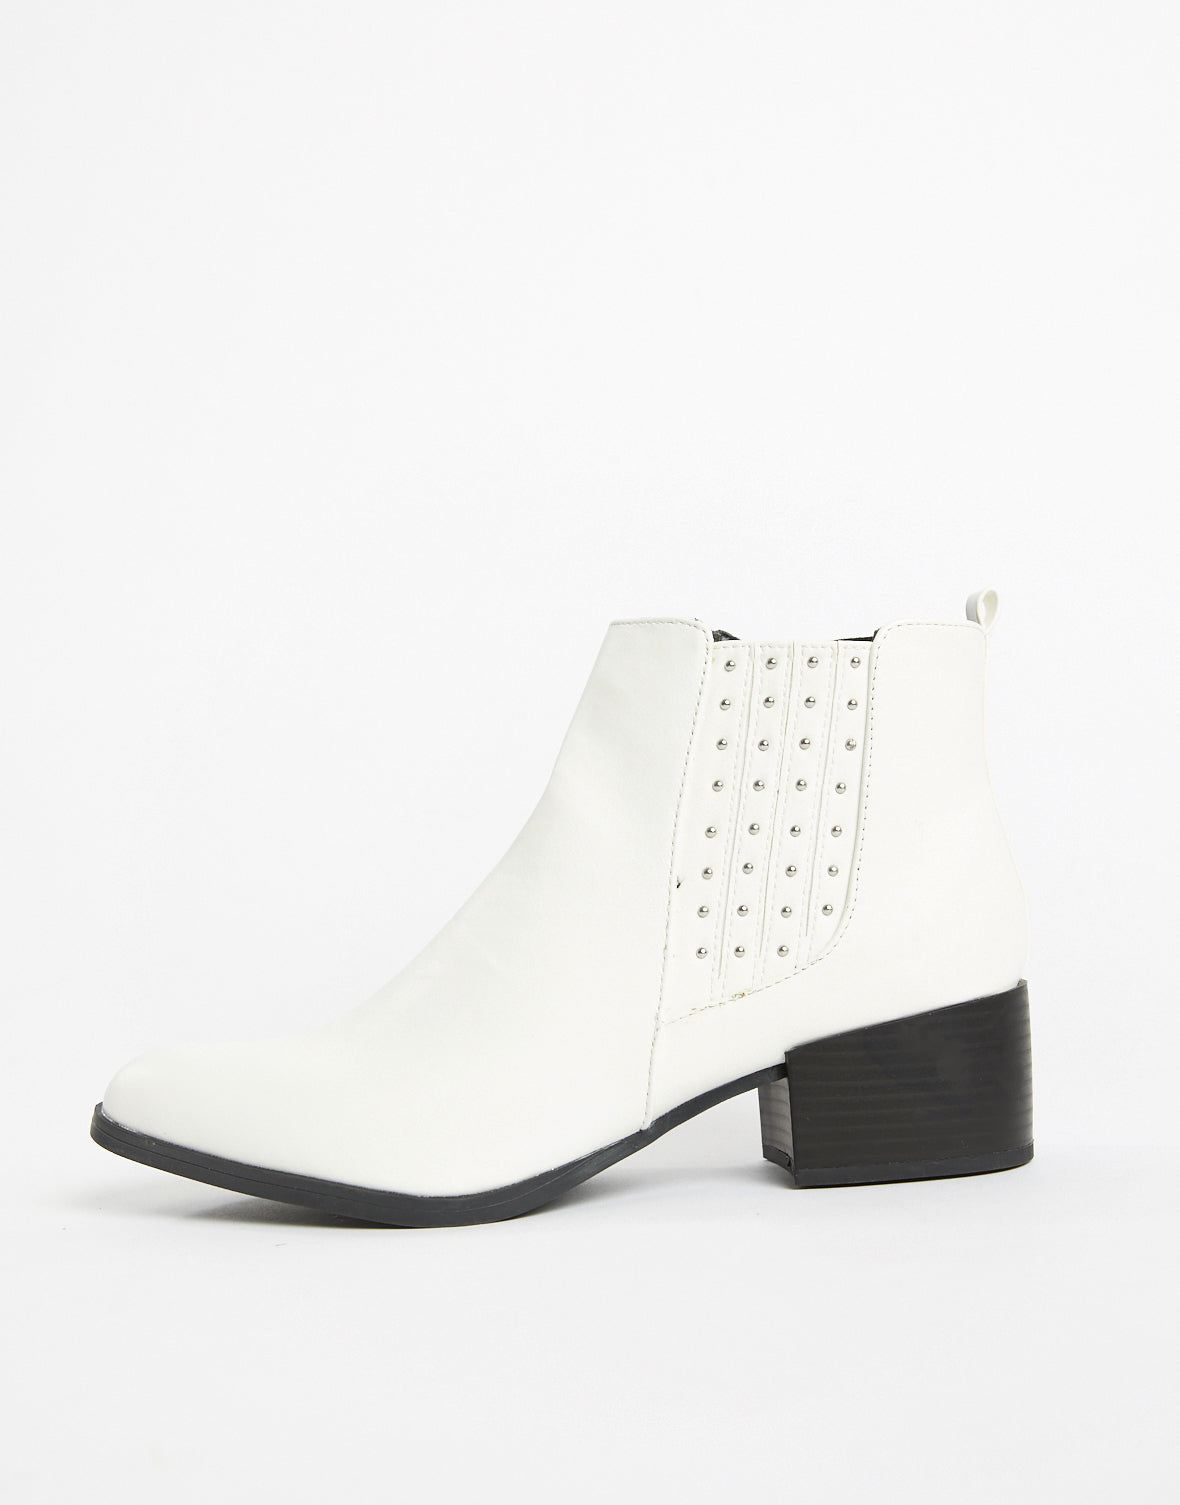 Celine White Stud Booties